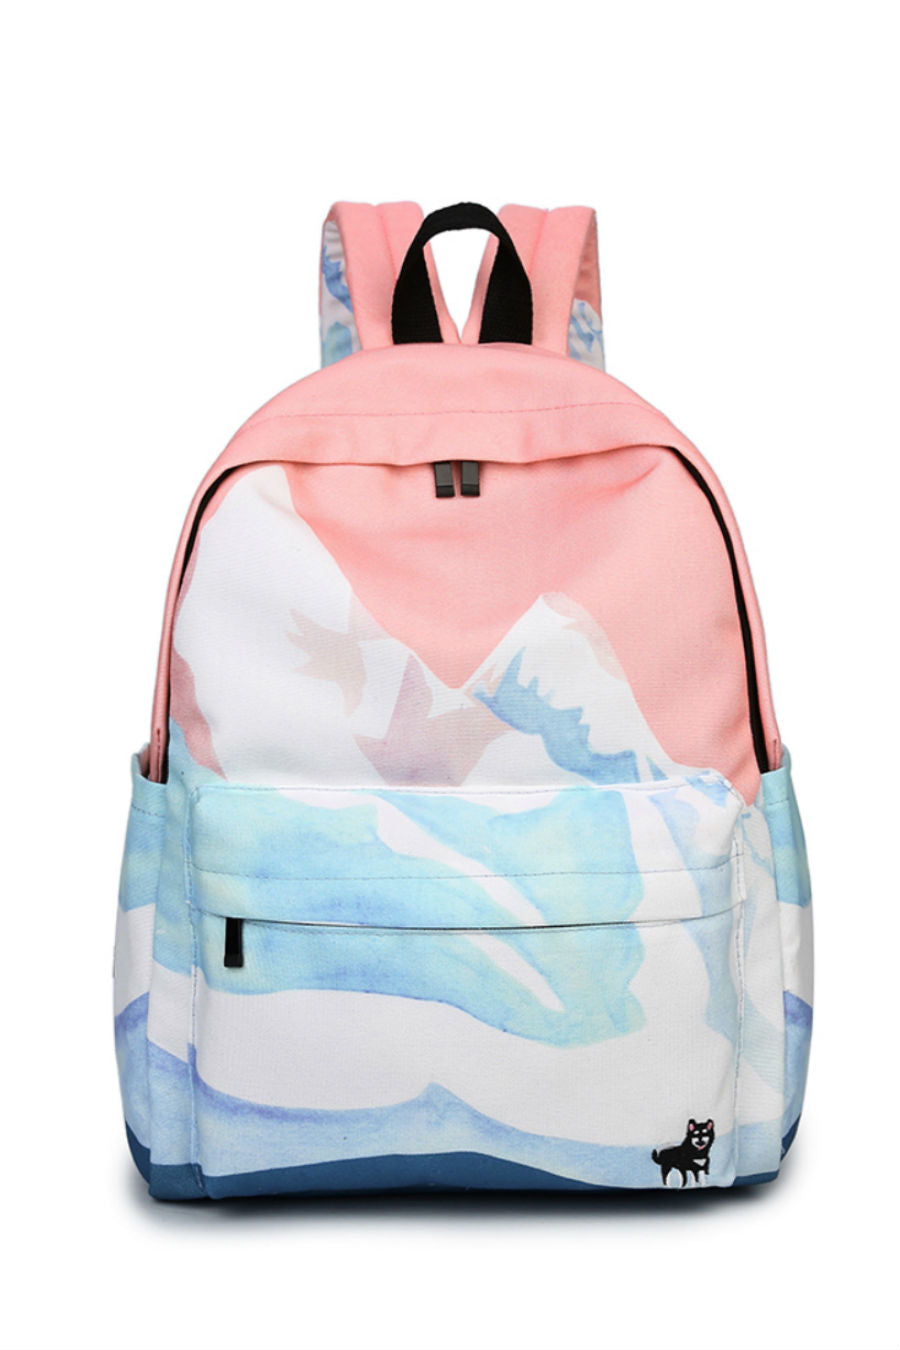 Snowberg Backpack